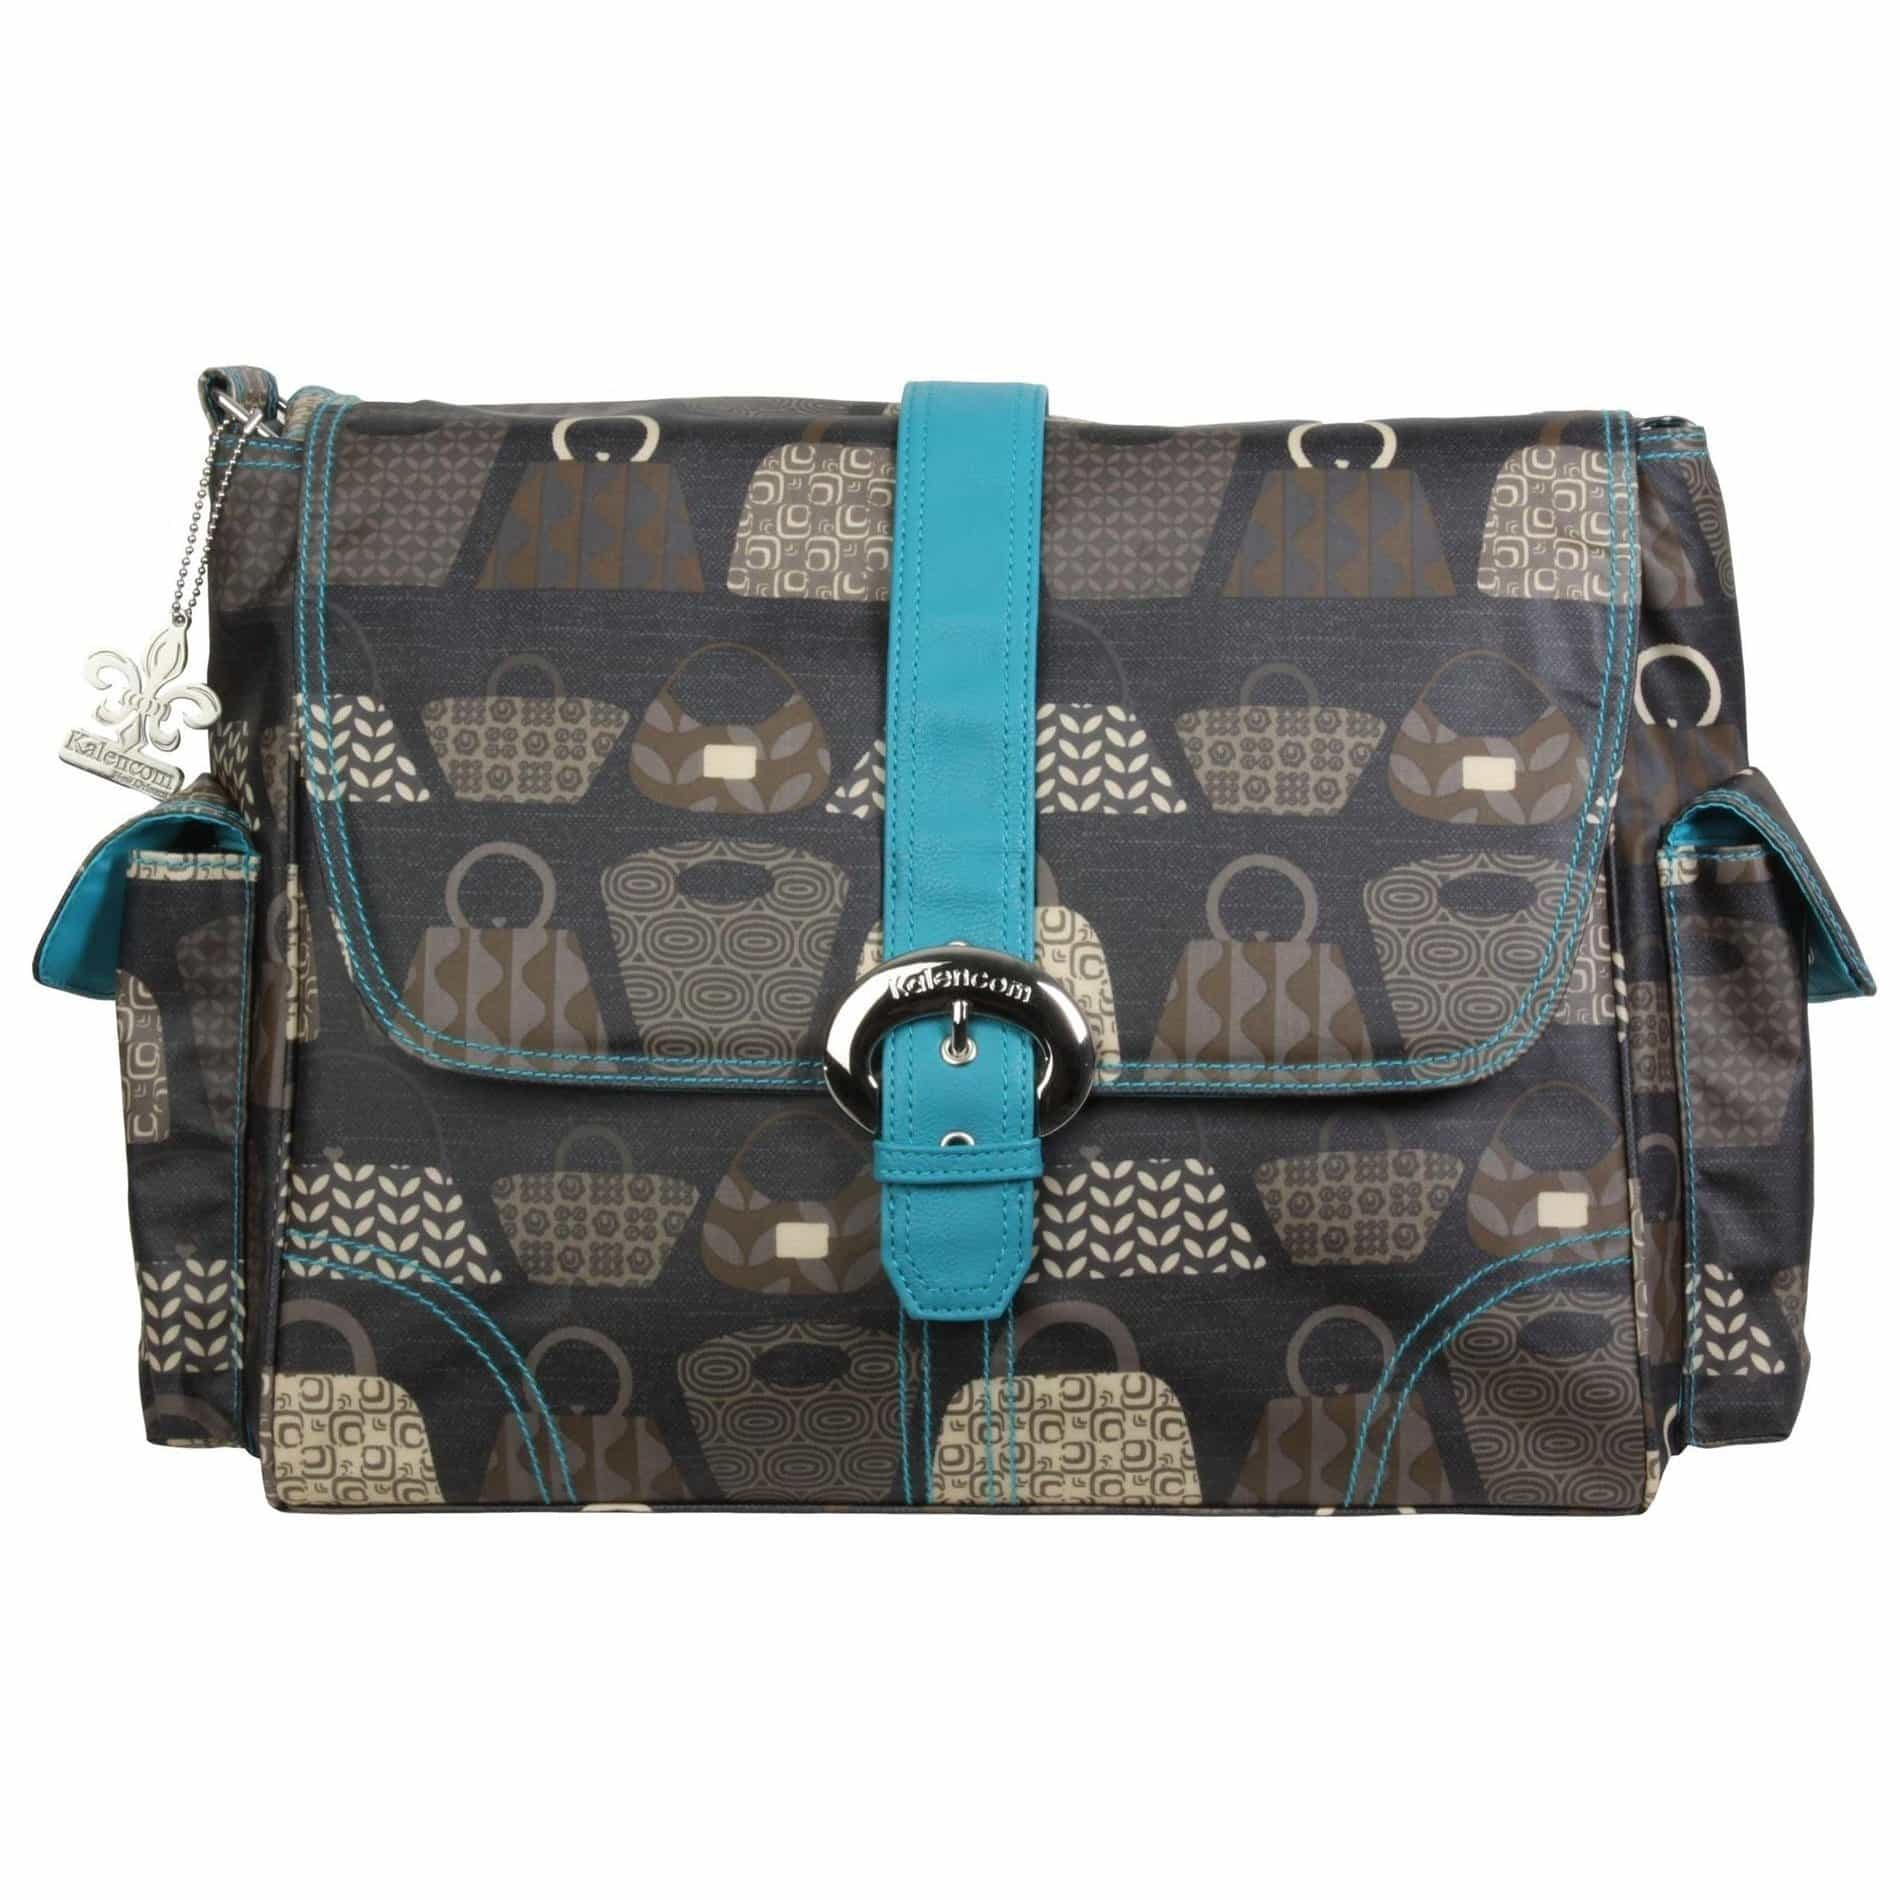 Bag Lady - Teal Matte Coated Buckle Diaper Bag | Style 2960 - Kalencom-Diaper Bags-Jack and Jill Boutique